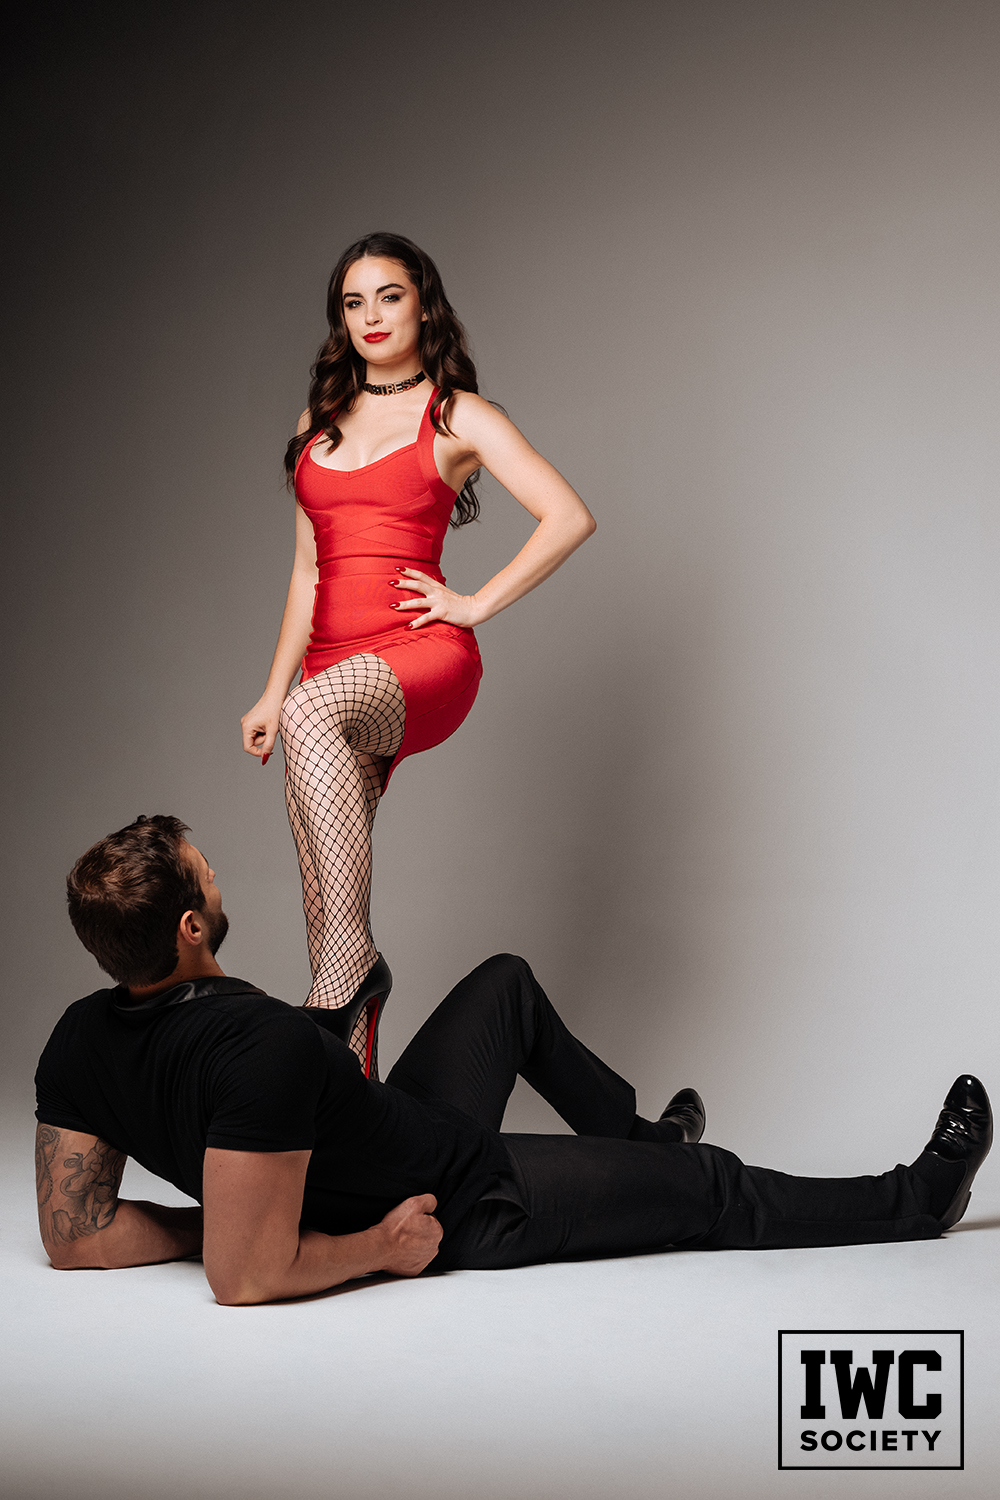 Brunette dominatrix Camryn stepping on mans chest with red sole heels and smirking